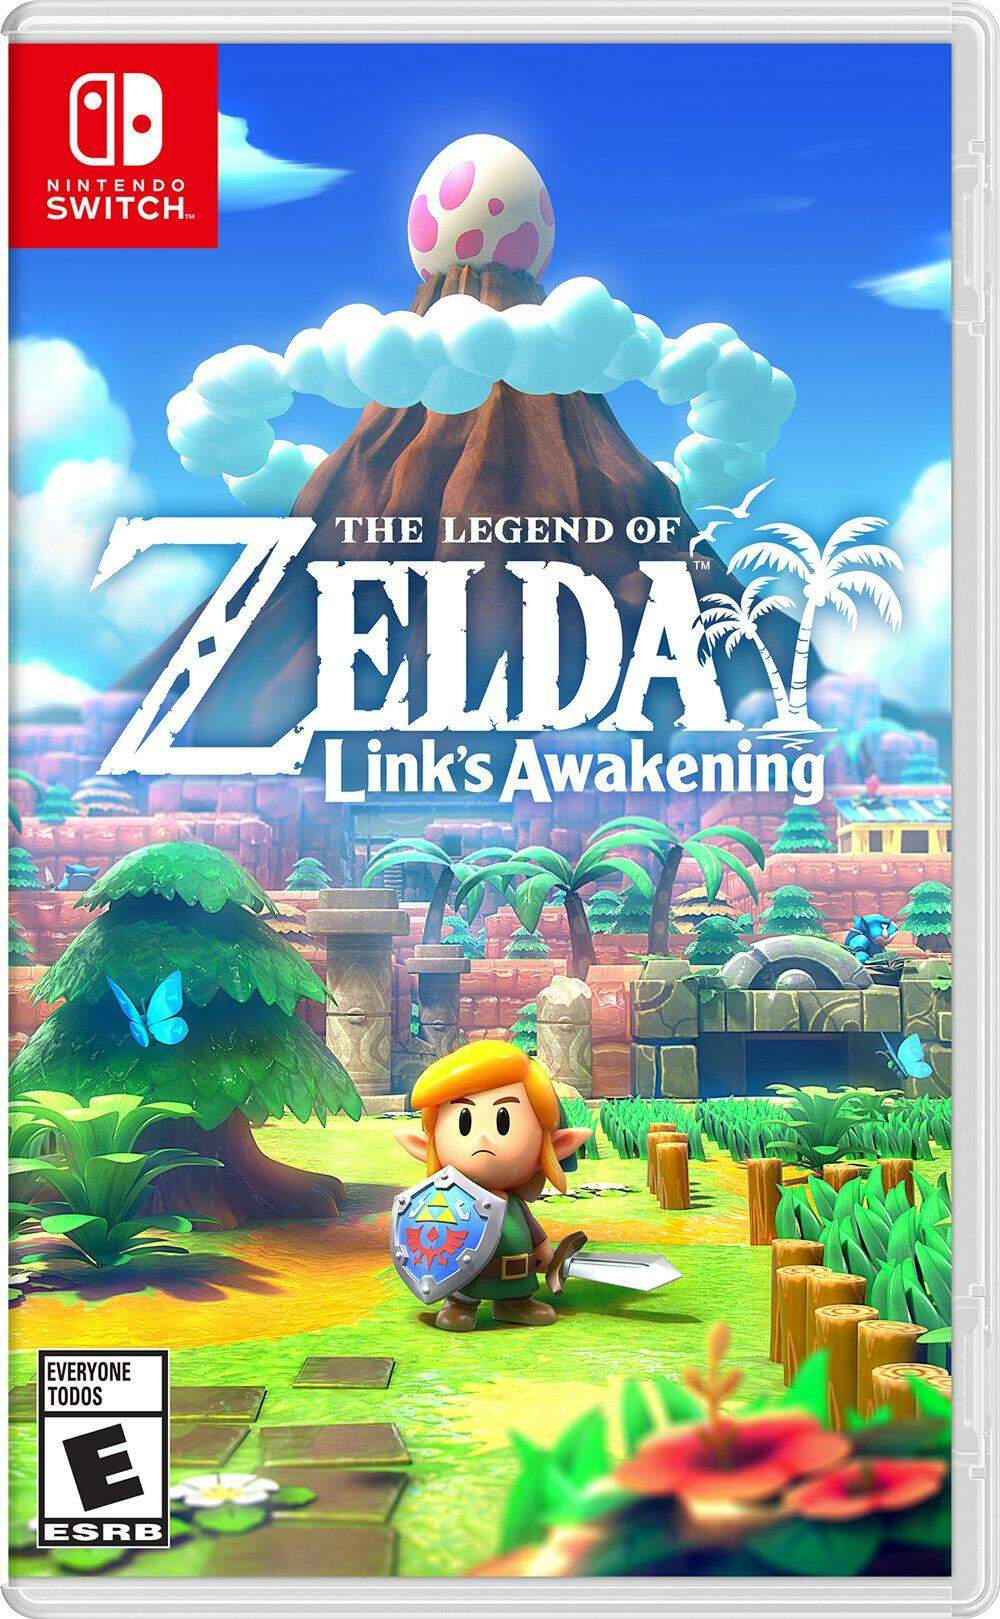 The Legend of Zelda: Links Awakening - Nintendo Switch